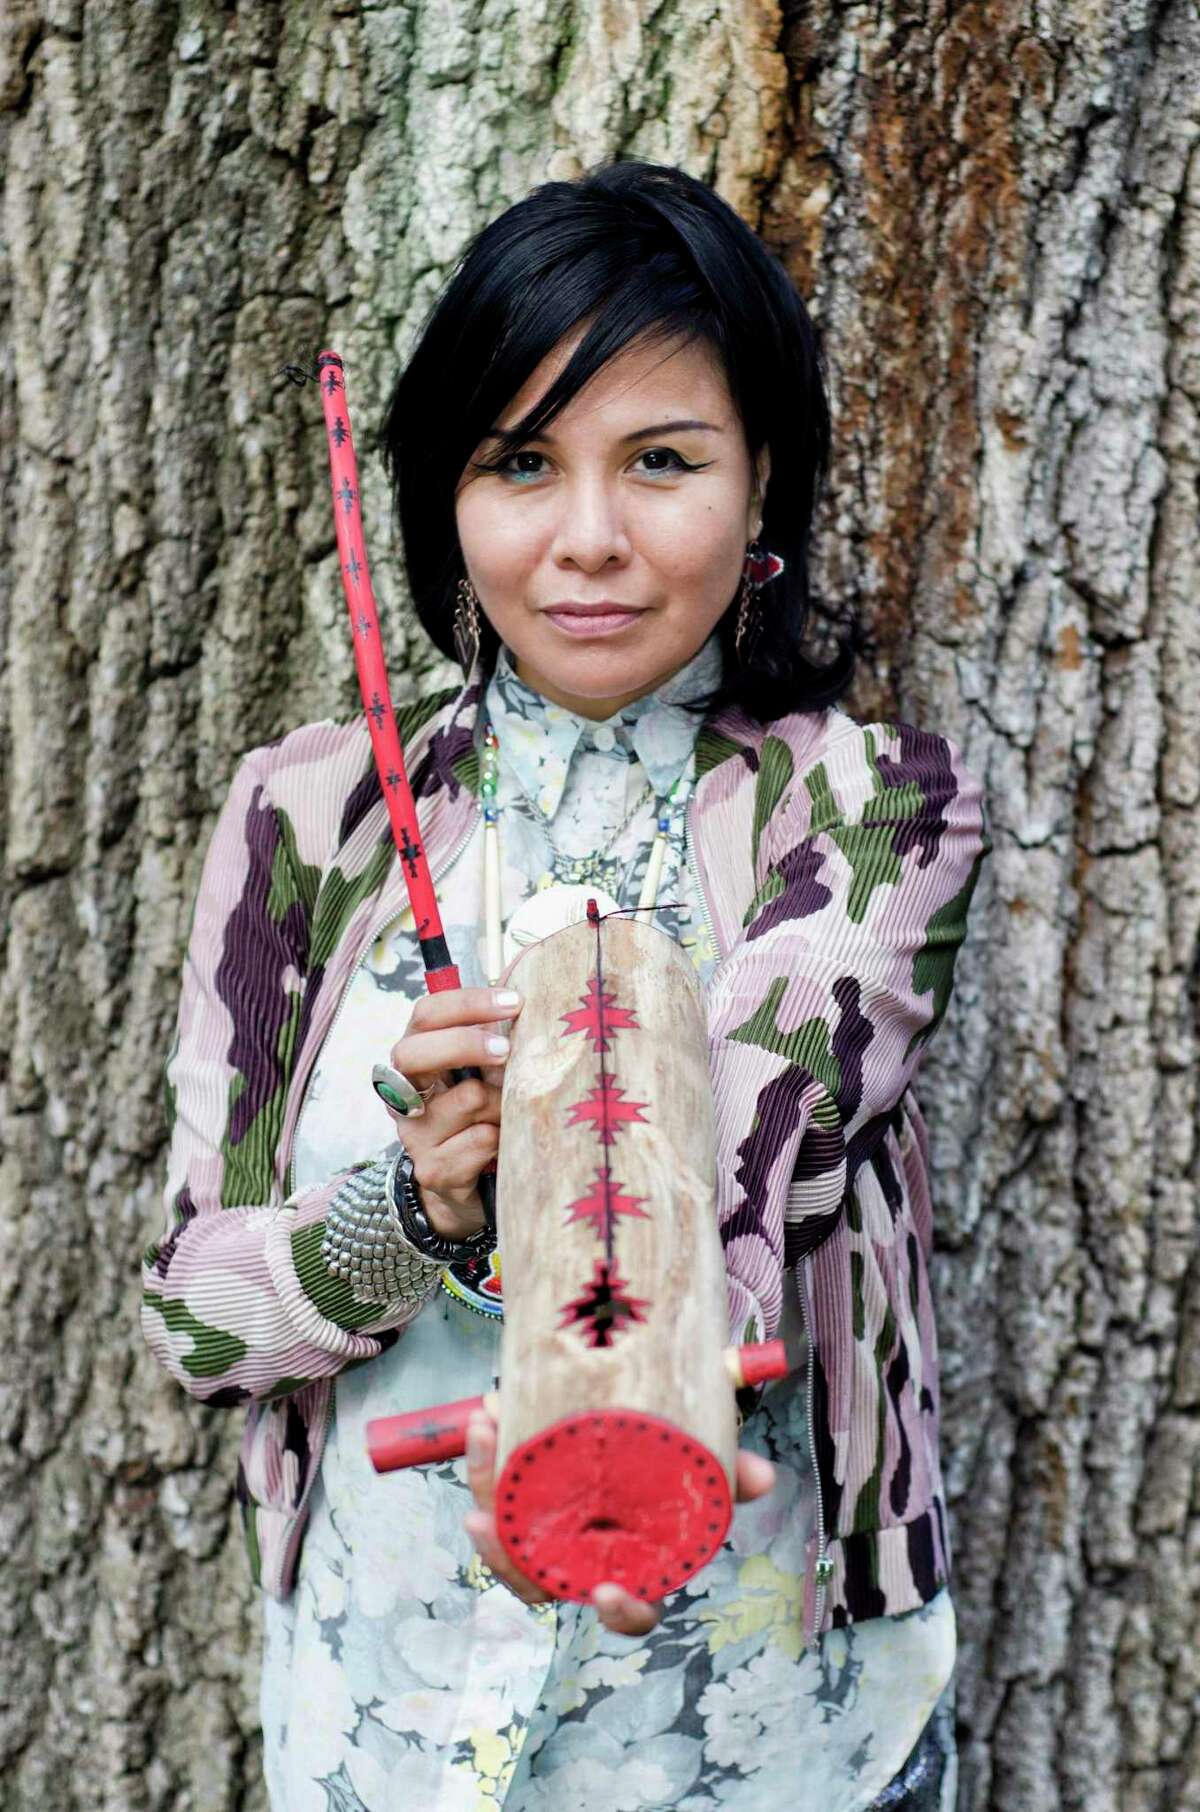 Musician Laura Ortman is coming to Bridgeport's Housatonic Museum of Art Feb. 20 to engage the scaffolded sculptures of the current exhibit by playing violin, as well as employing native instruments and digital effects.